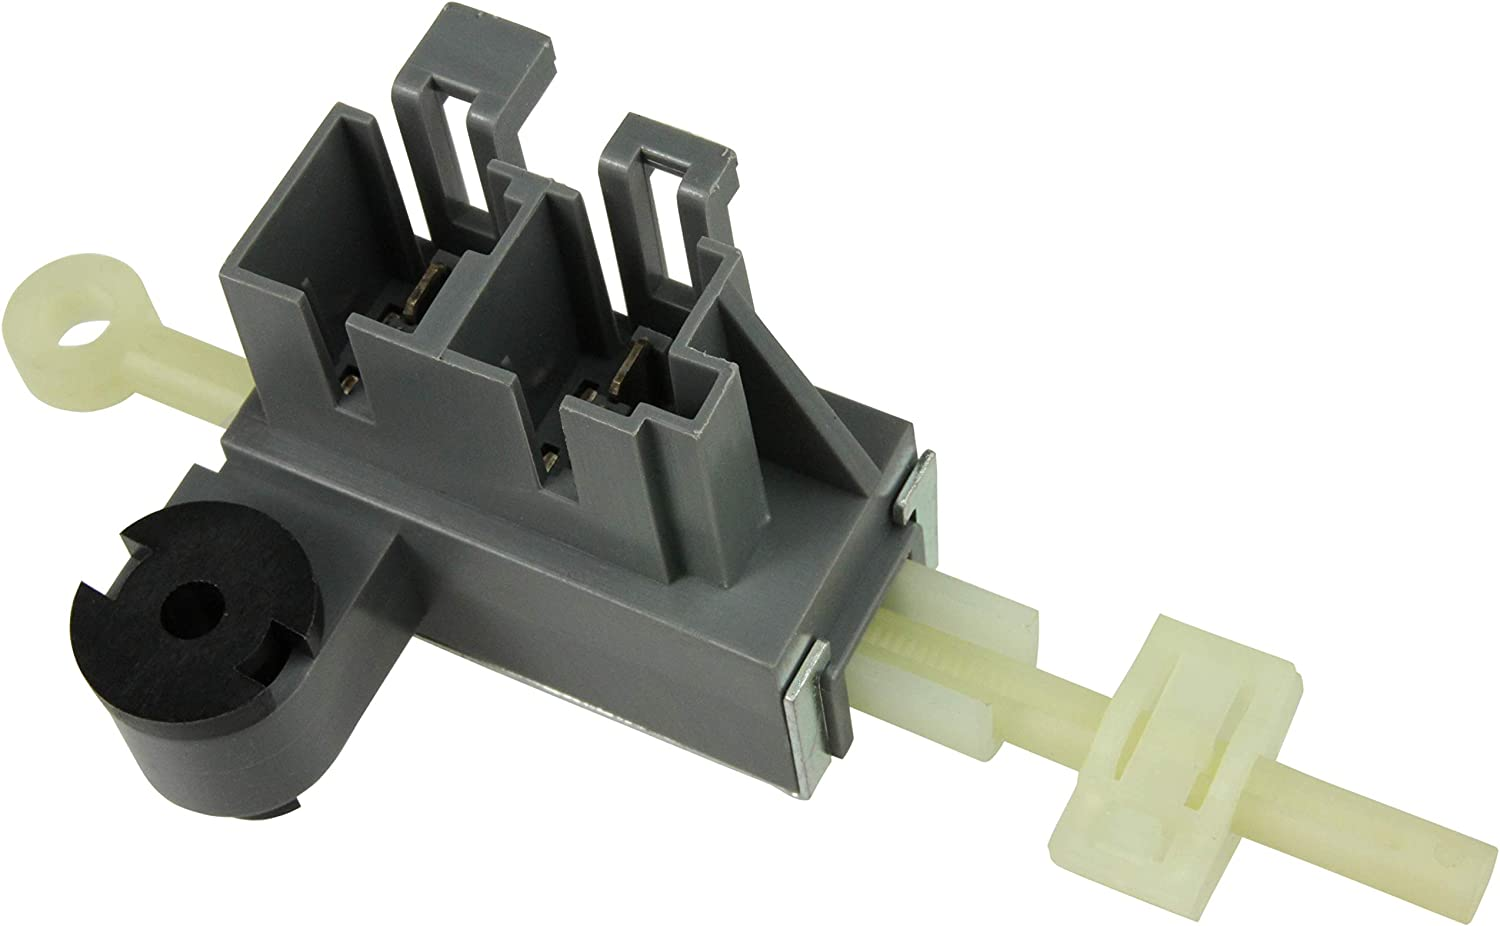 Wells A04800 Clutch Position excellence Pedal Switch New products world's highest quality popular